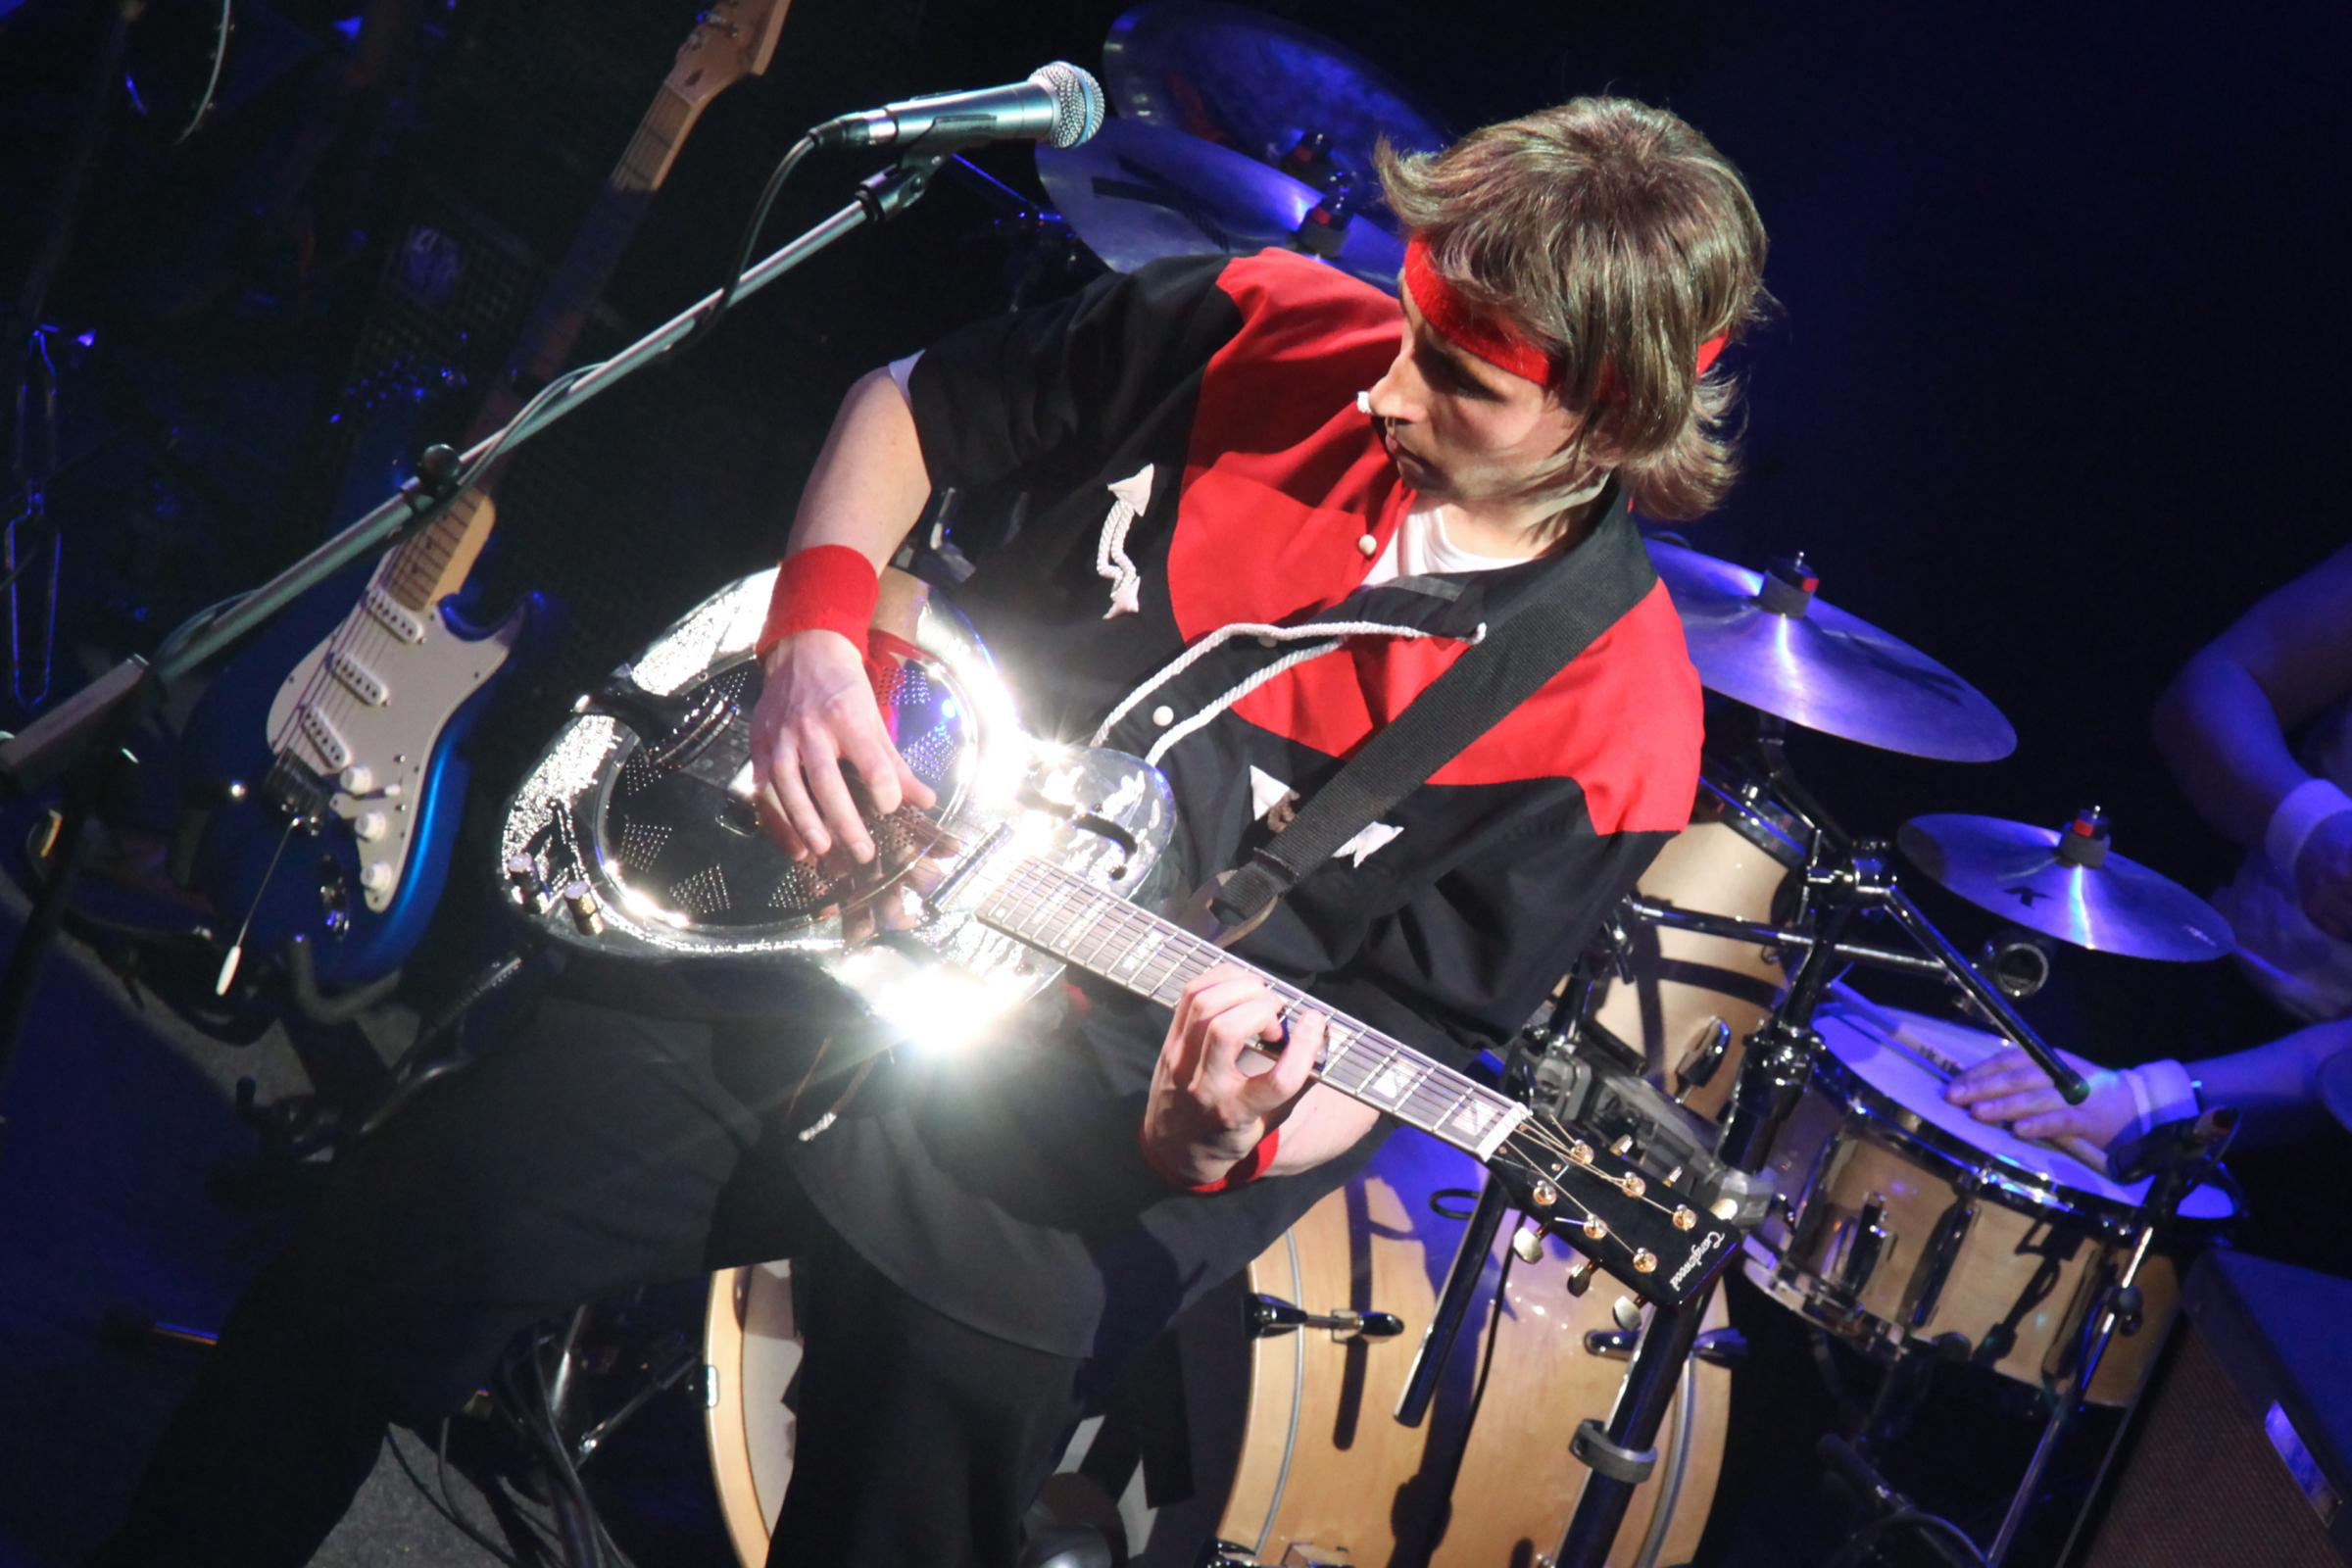 Money for Nothing was formed in 2000 as a tribute to one of the world's premier rock bands - Dire Straits